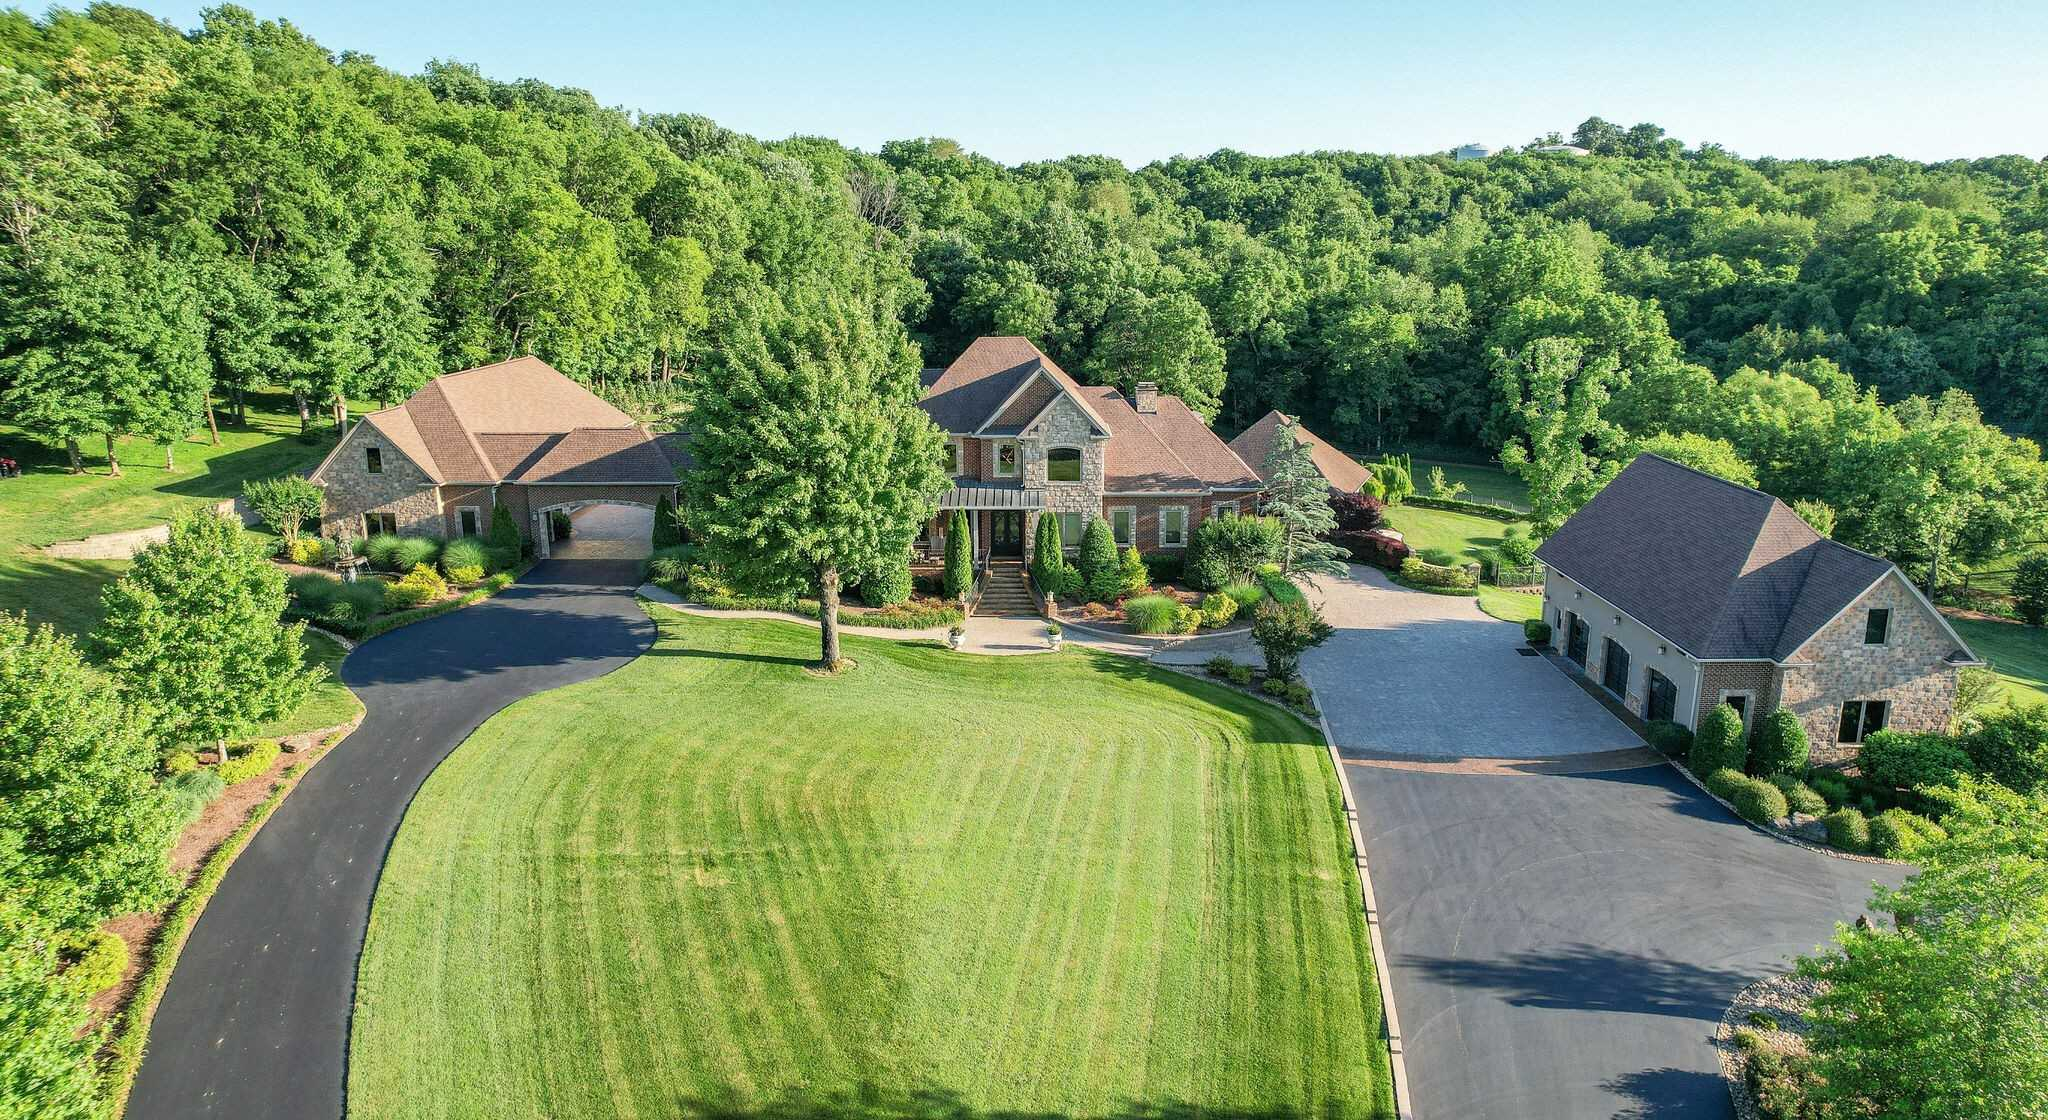 $12,750,000 - 5Br/9Ba -  for Sale in N/a, Franklin